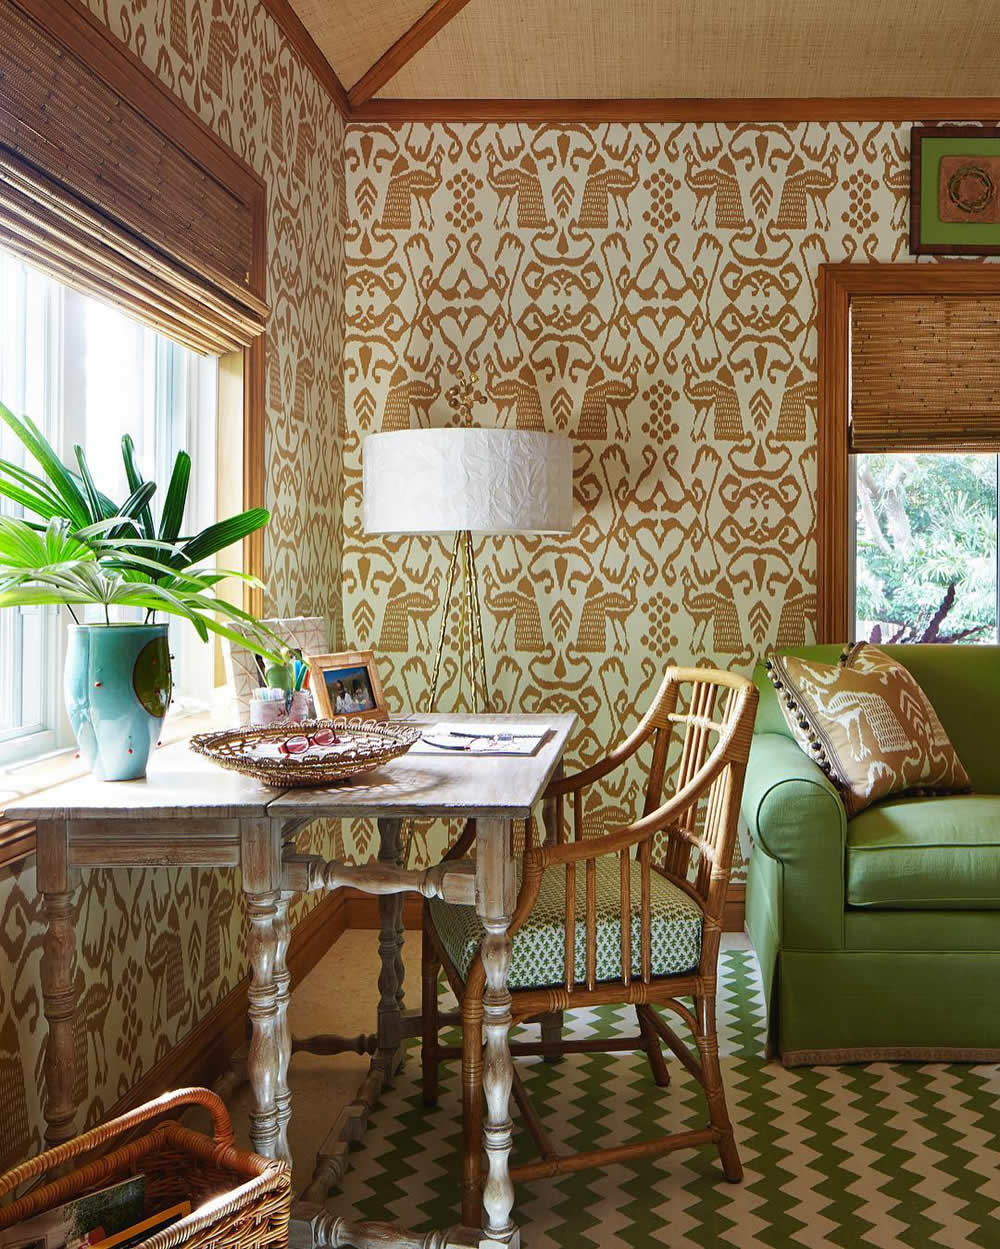 I'm sorry, I don't recall where I found this photo or who designed the room! If anyone knows, please message me and I'll add the link. The patterned wallpaper is from the  China Seas collection for Quadrille Fabrics .